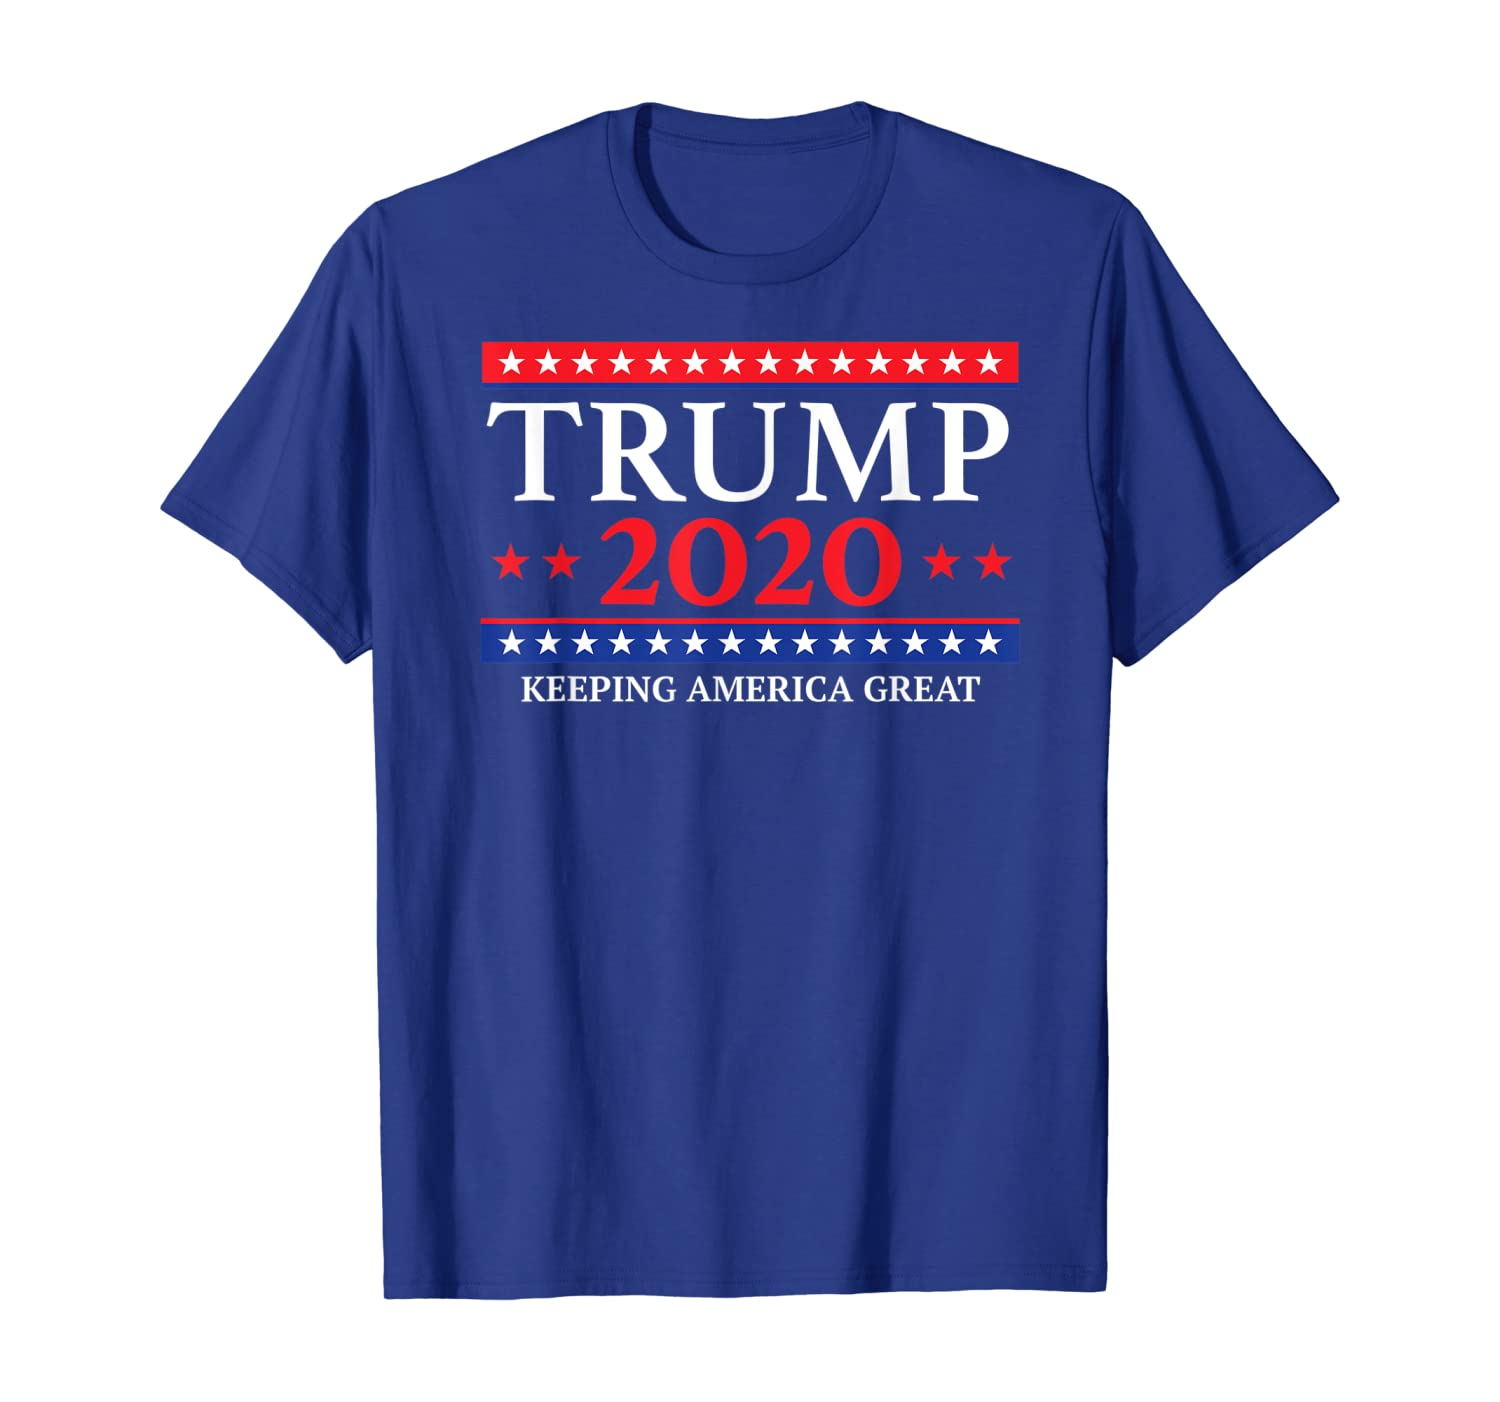 Trump 2020 - Trump For President Election T Shirt Unisex Tshirt